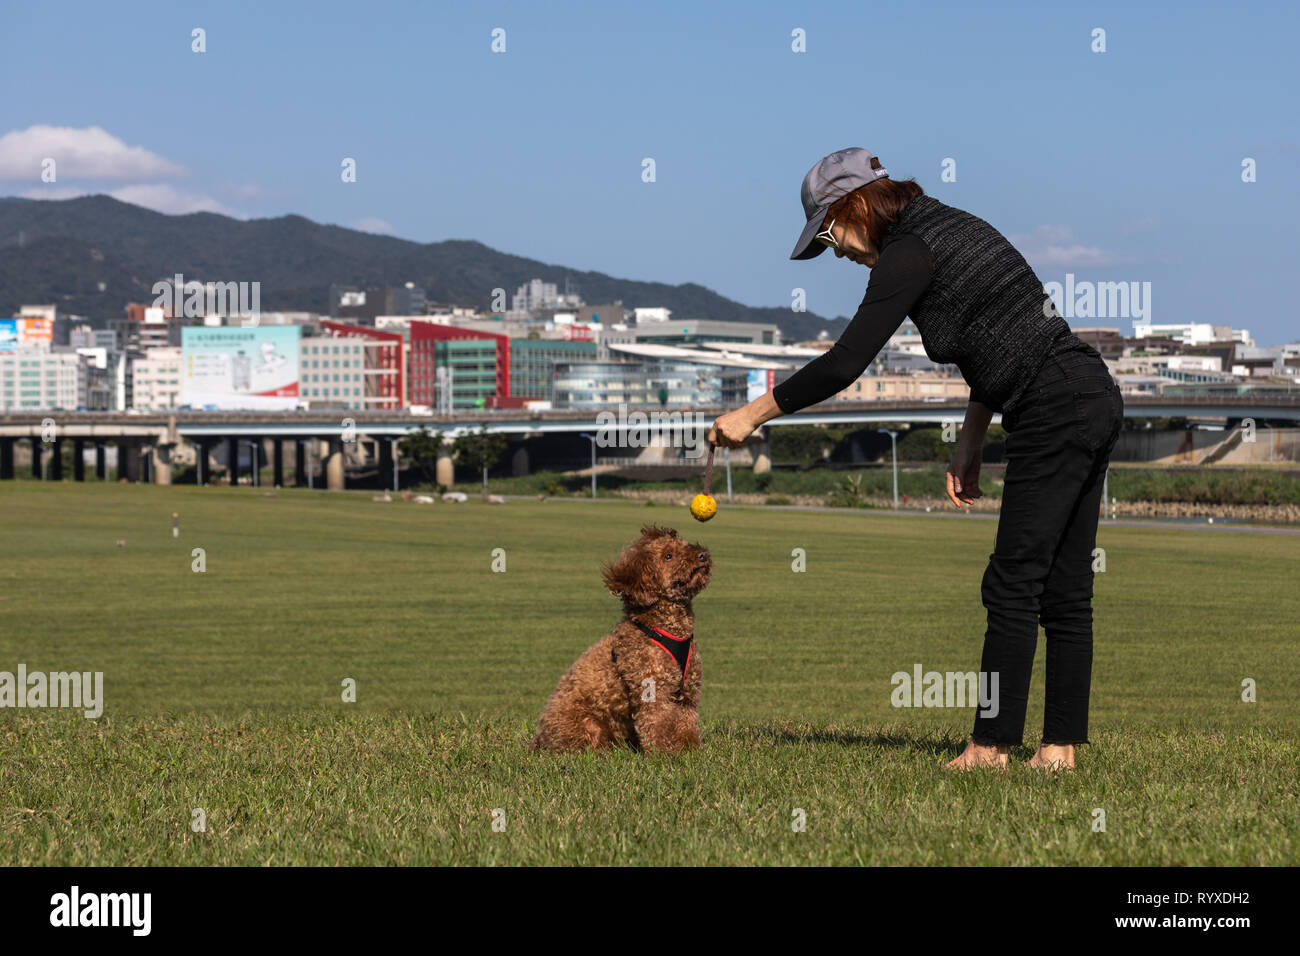 Brown poodle focusing on the ball while playing fetch with its owner. - Stock Image